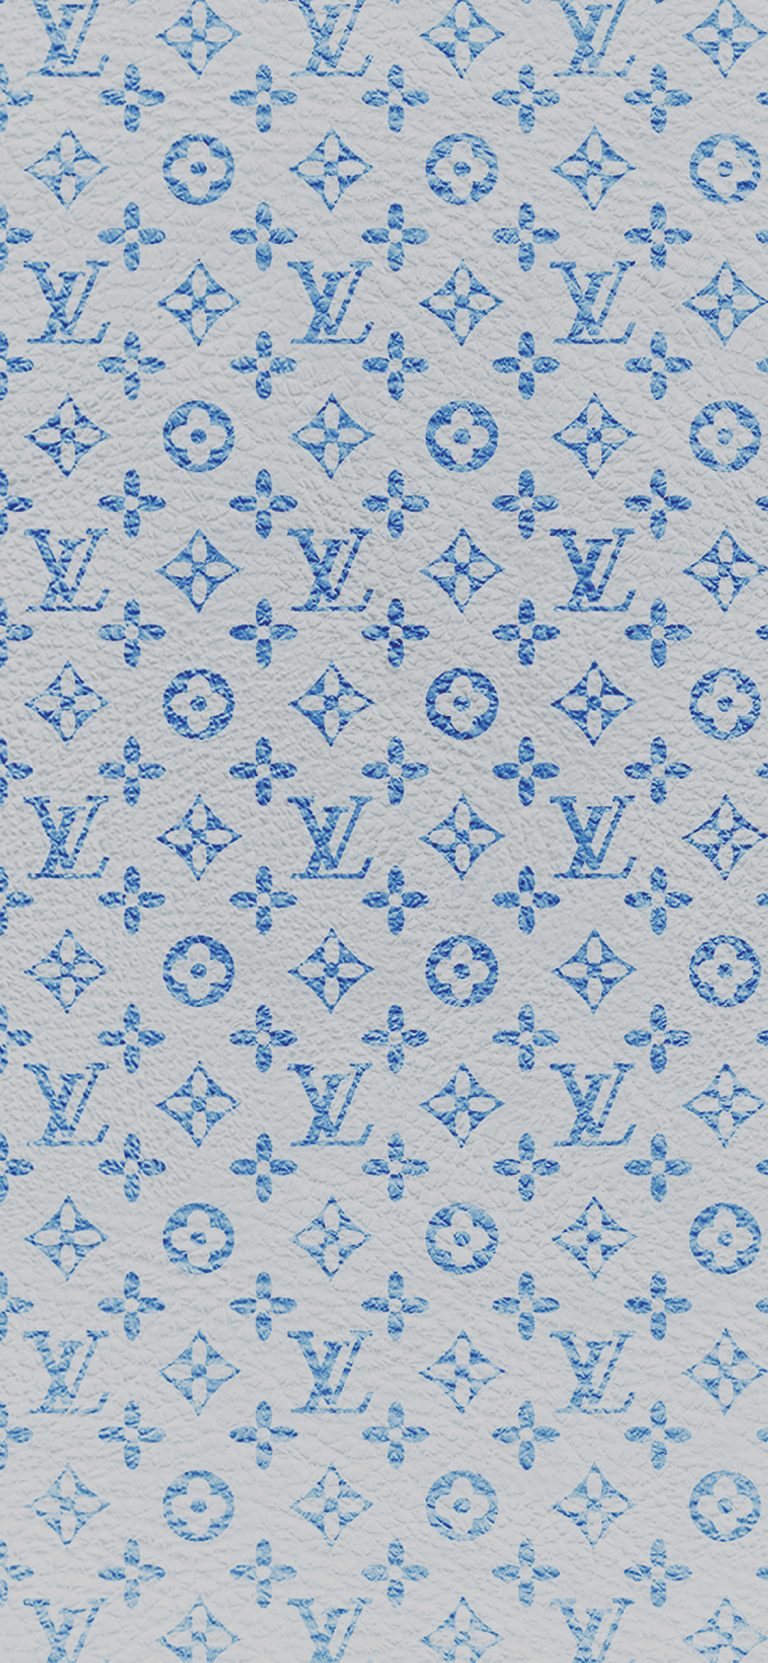 louis vuitton wallpaper 103